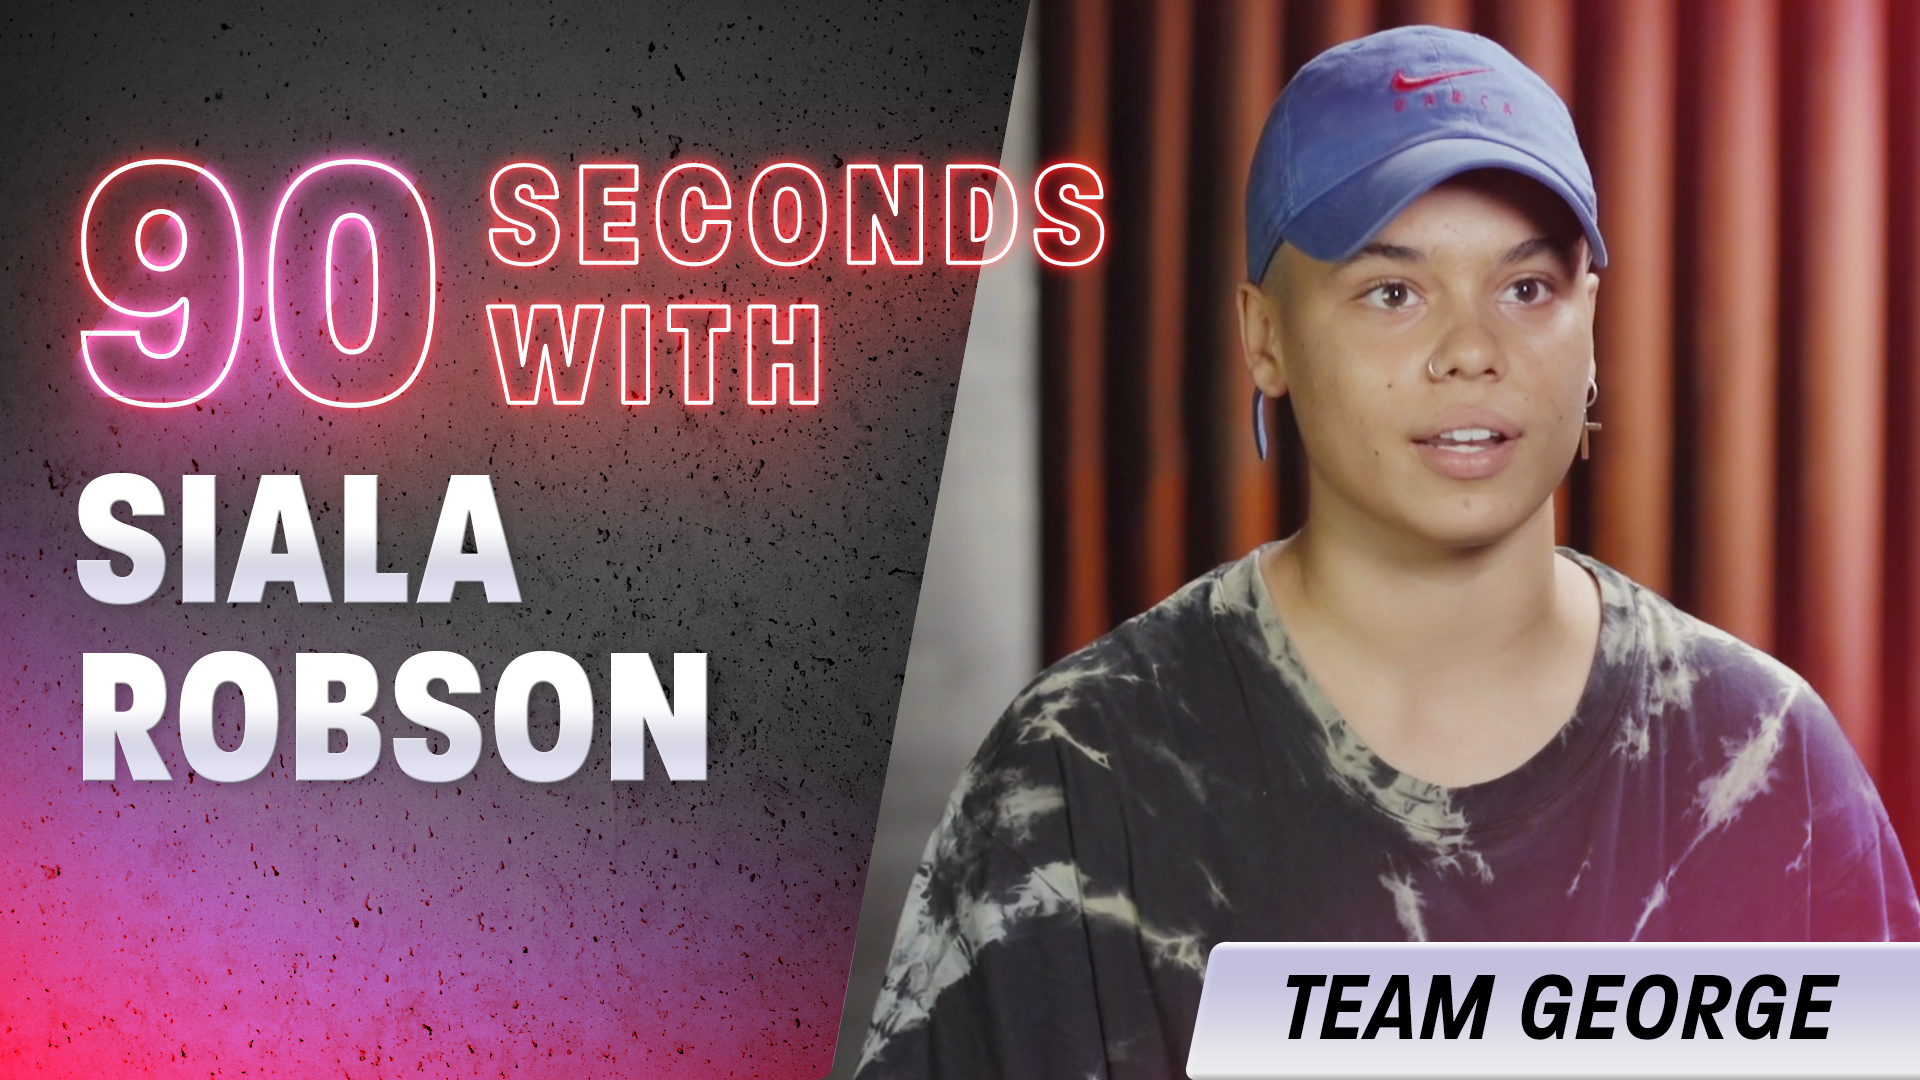 90 Seconds with Siala Robson